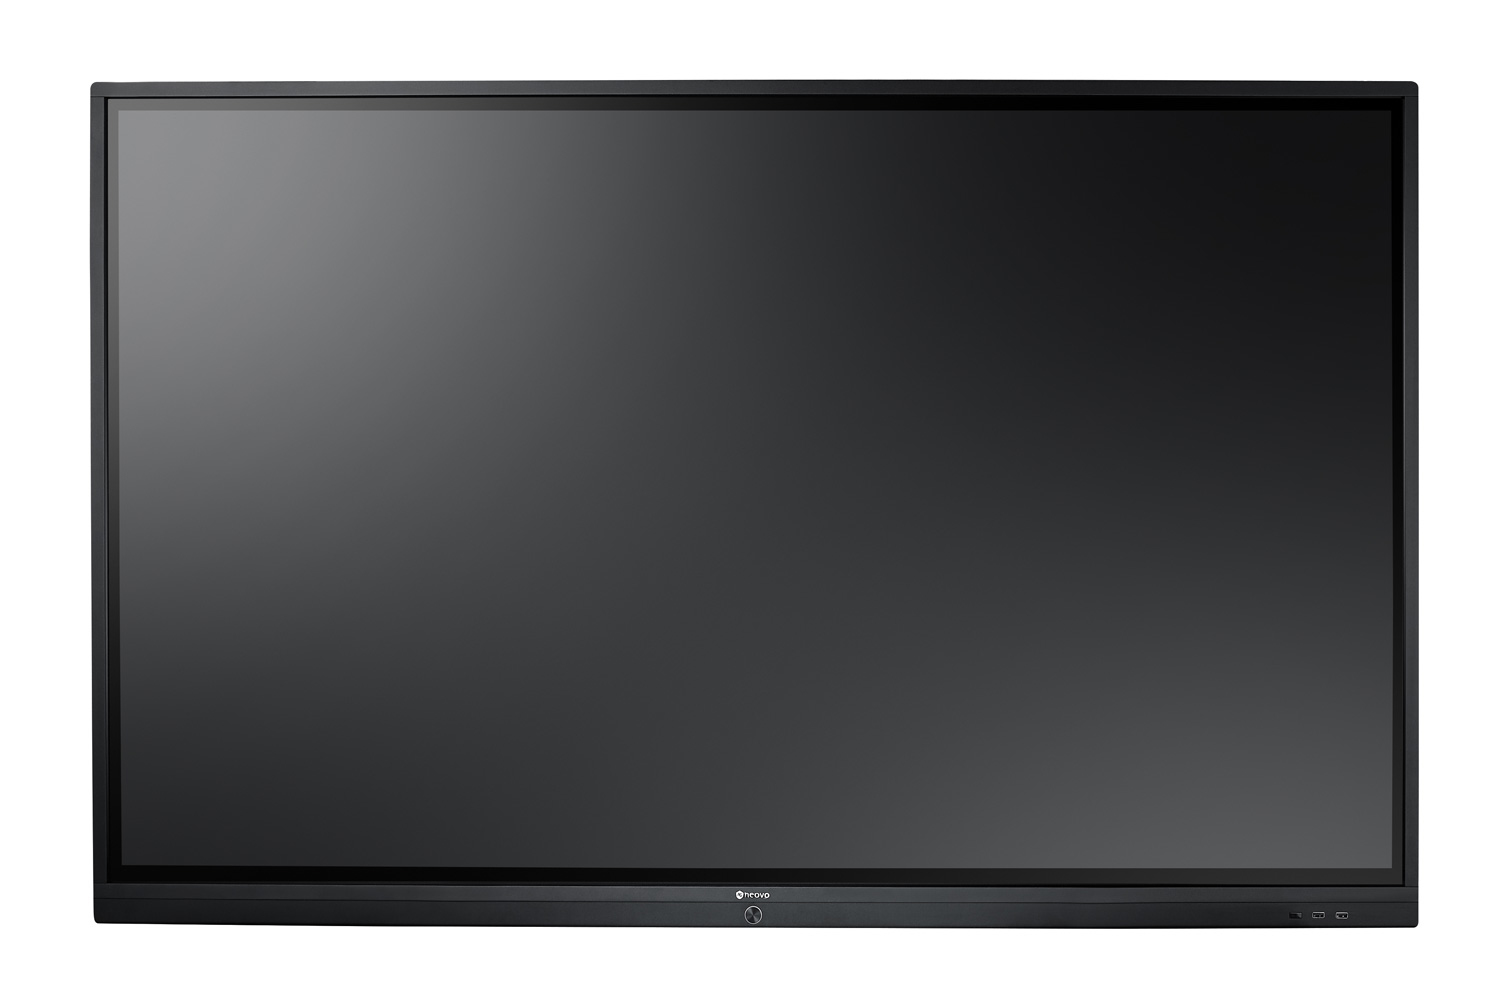 AG Neovo IFP-7502 touch screen monitor 189.2 cm 74.5